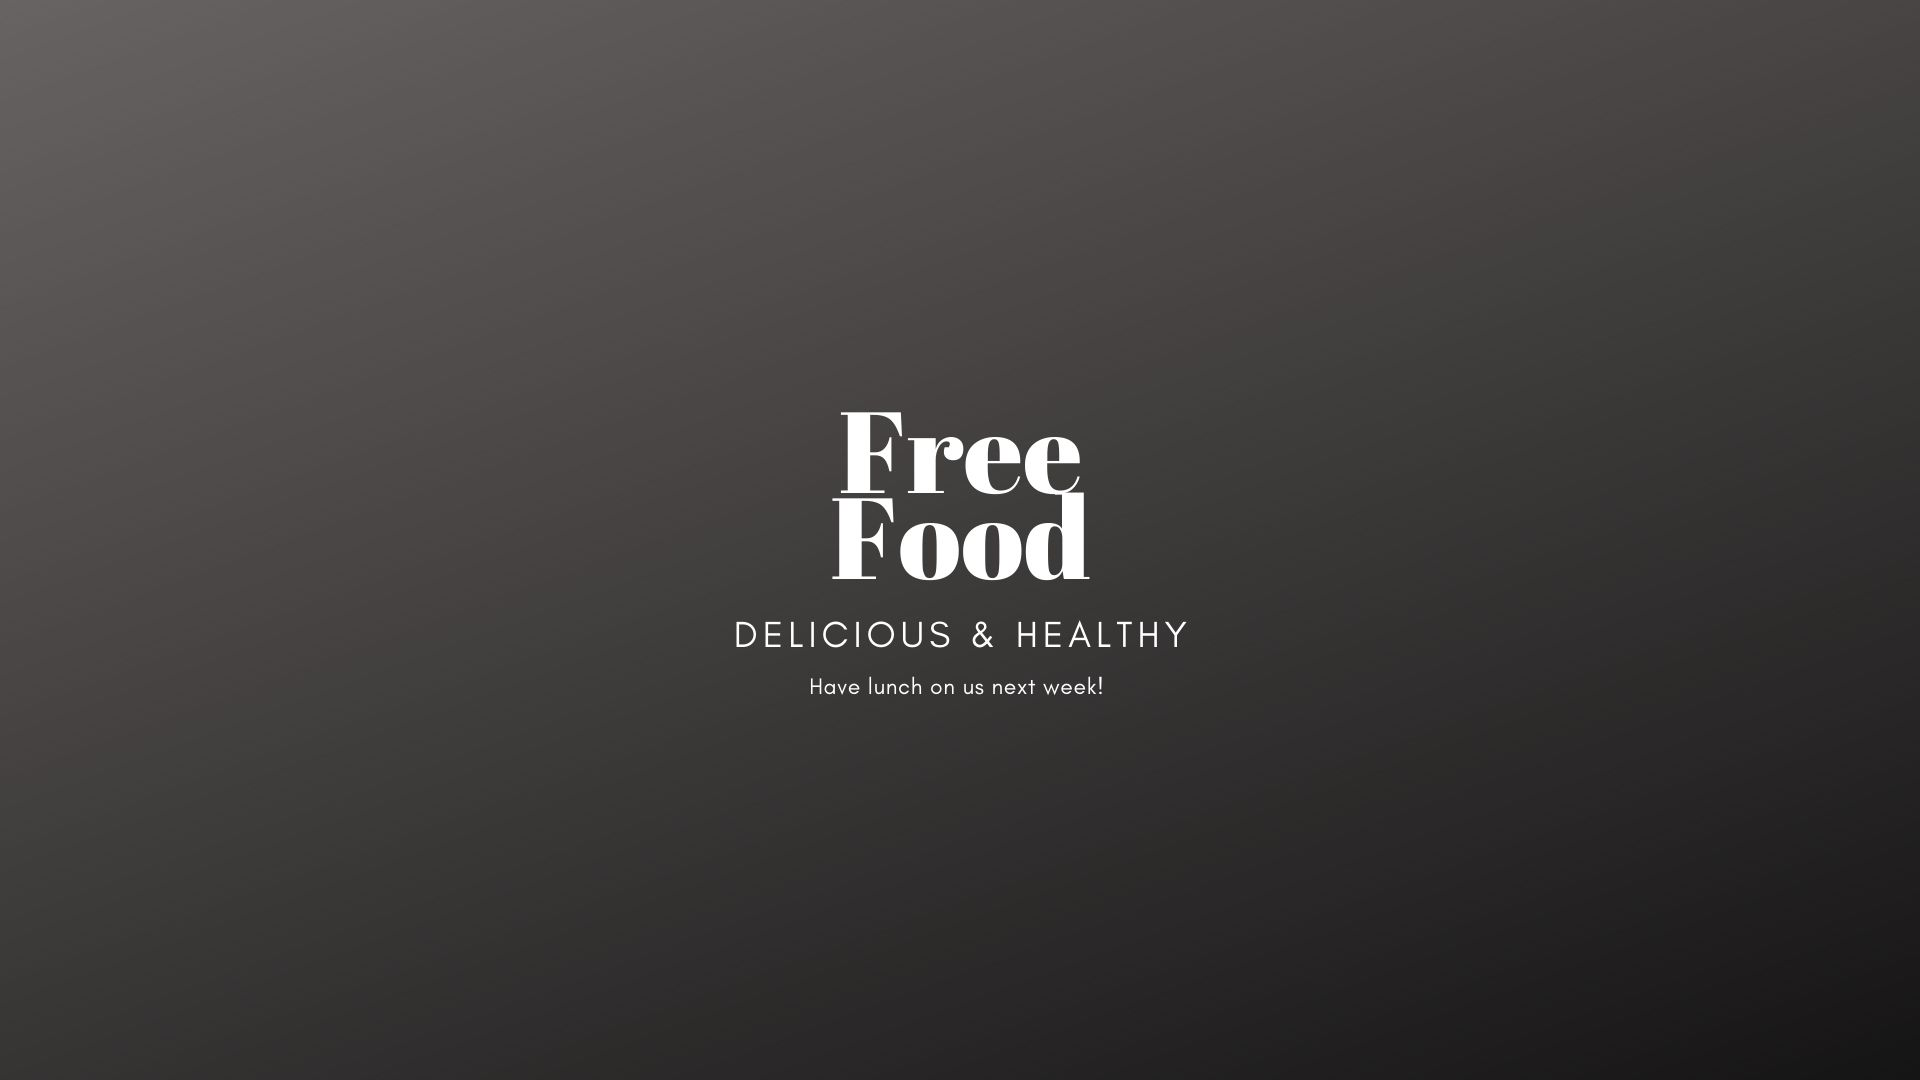 Free Food! – Support Local Business & Have Lunch On Us – +3 Prize Points